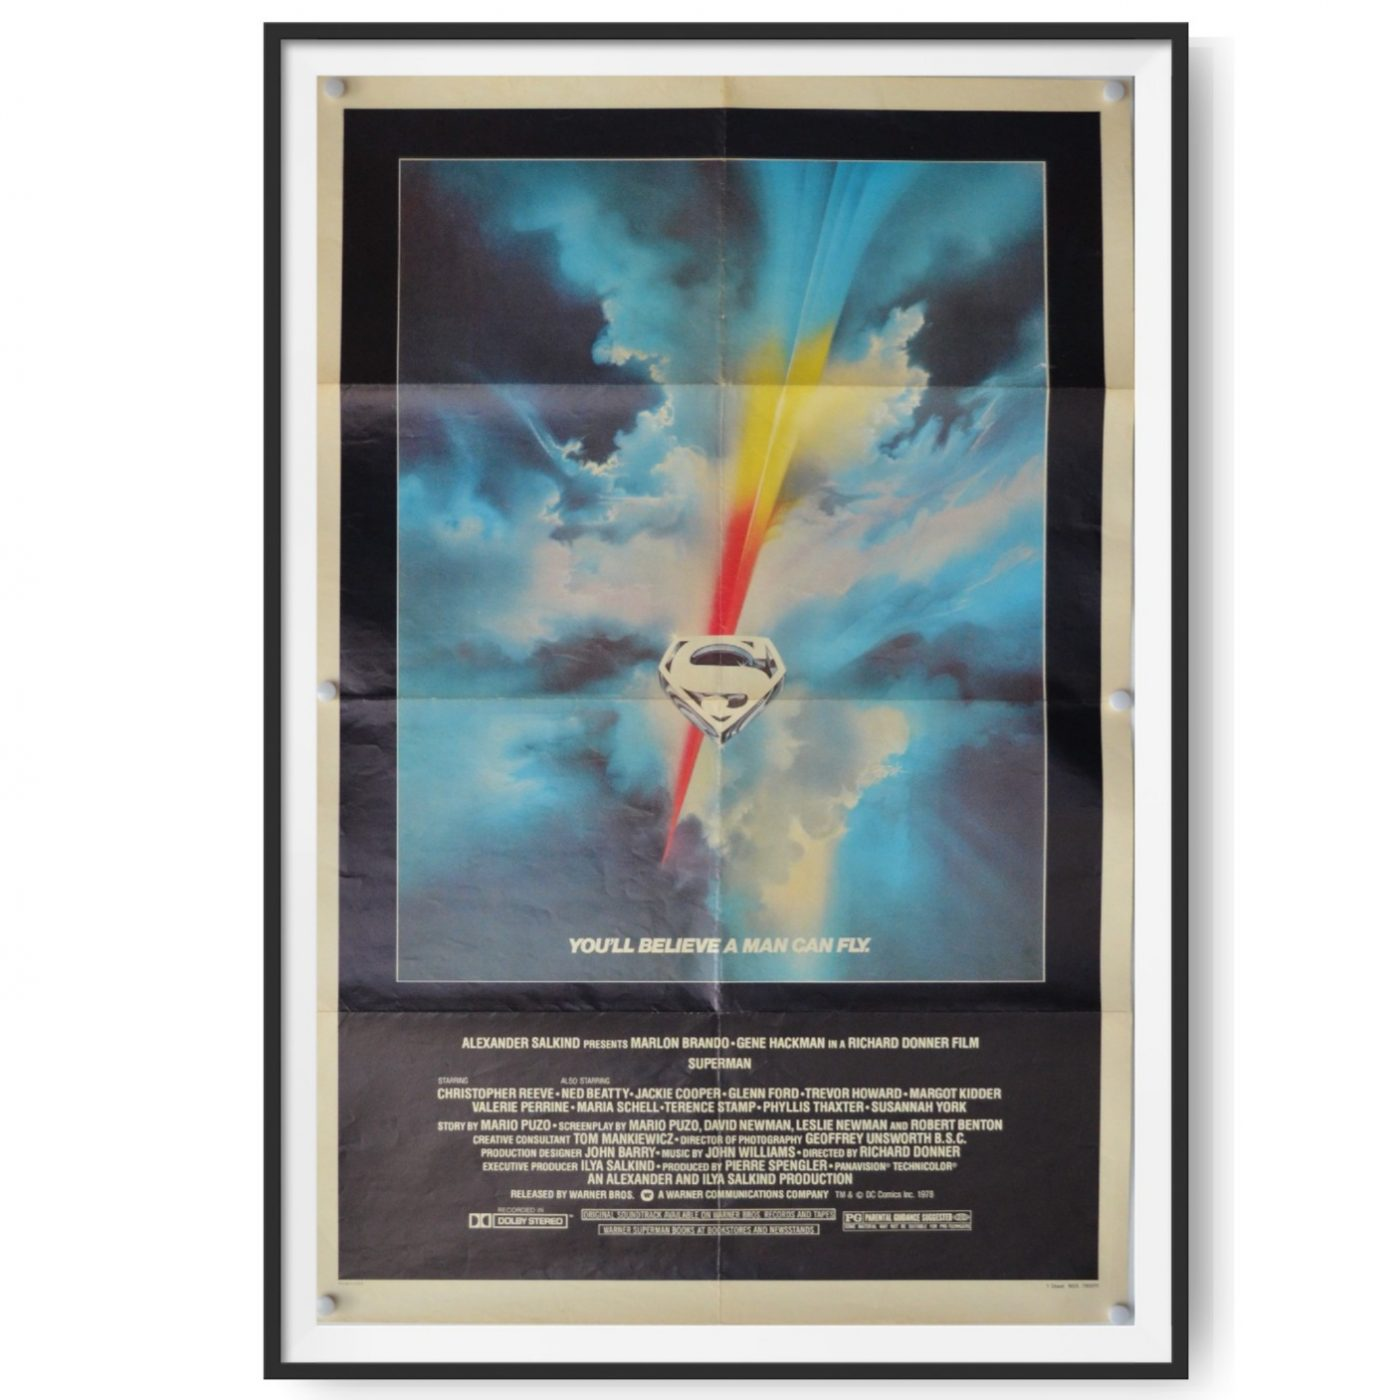 This is an original US One Sheet poster for the first release of the film Superman. The minimal poster design is by Bob Peak and features the famous 'Man of Steel' logo.